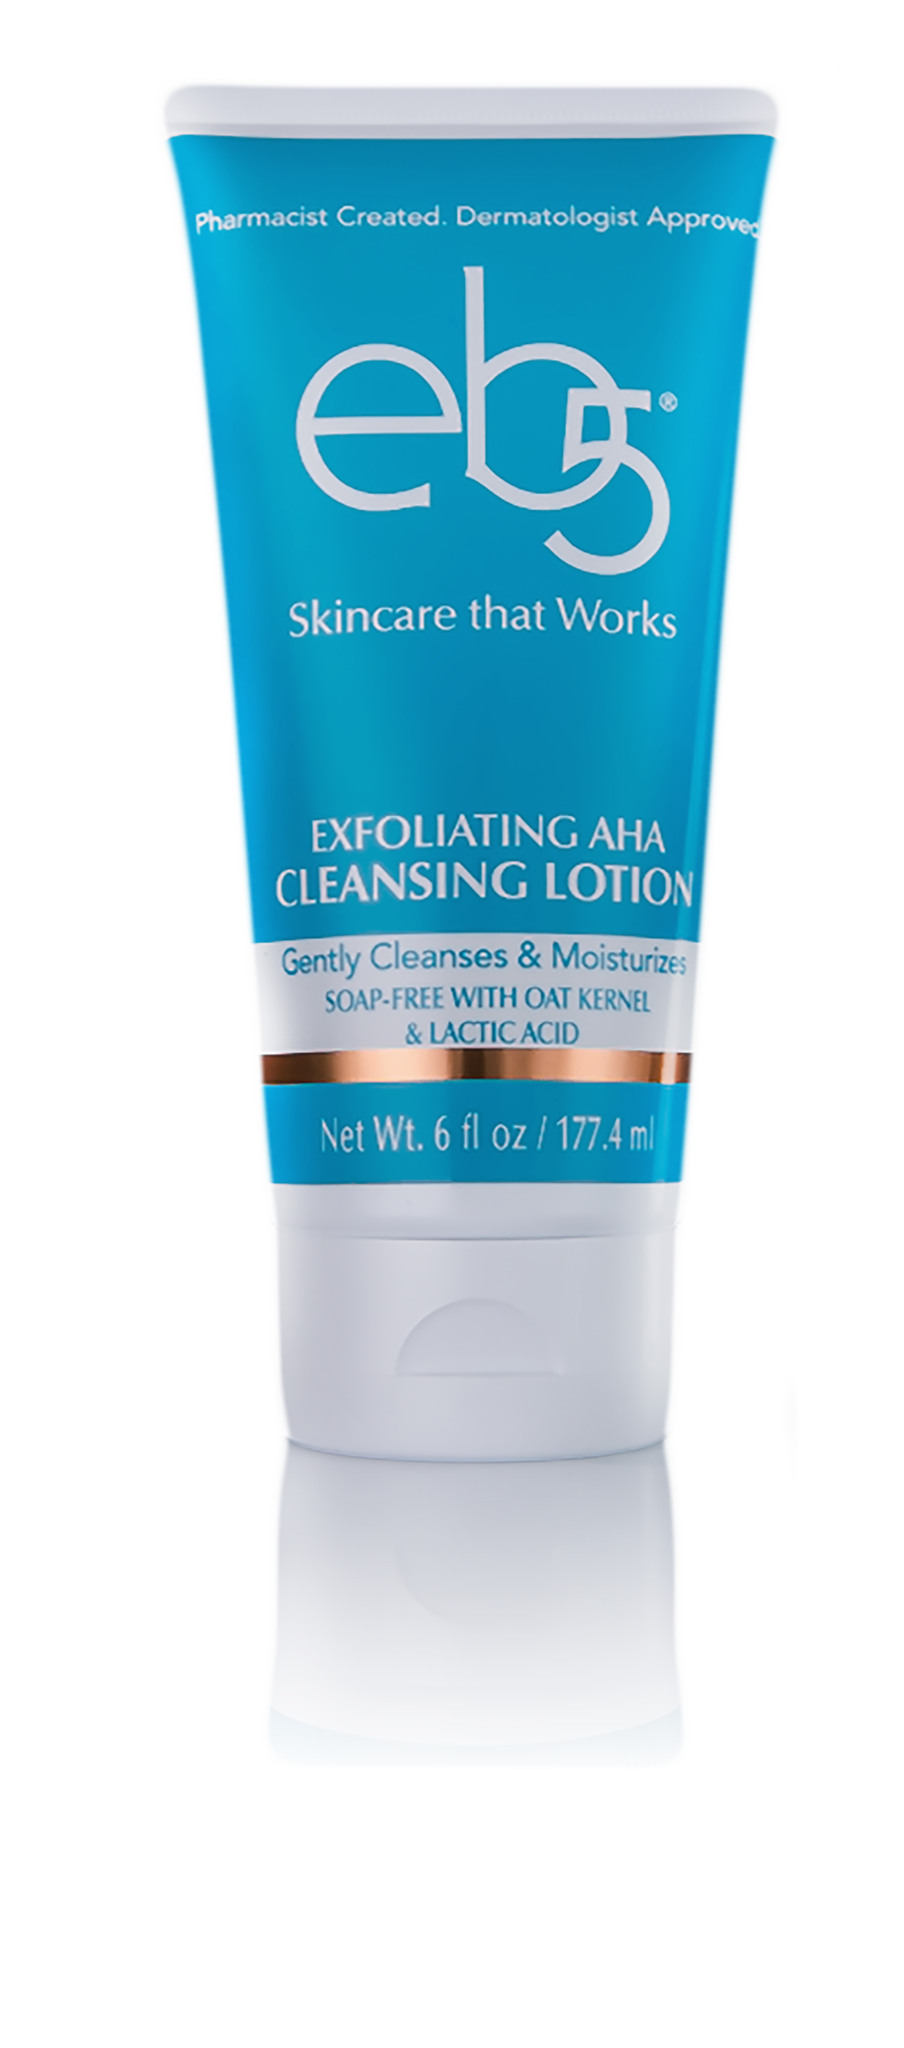 eb5 Exfoliating AHA Cleansing Lotion